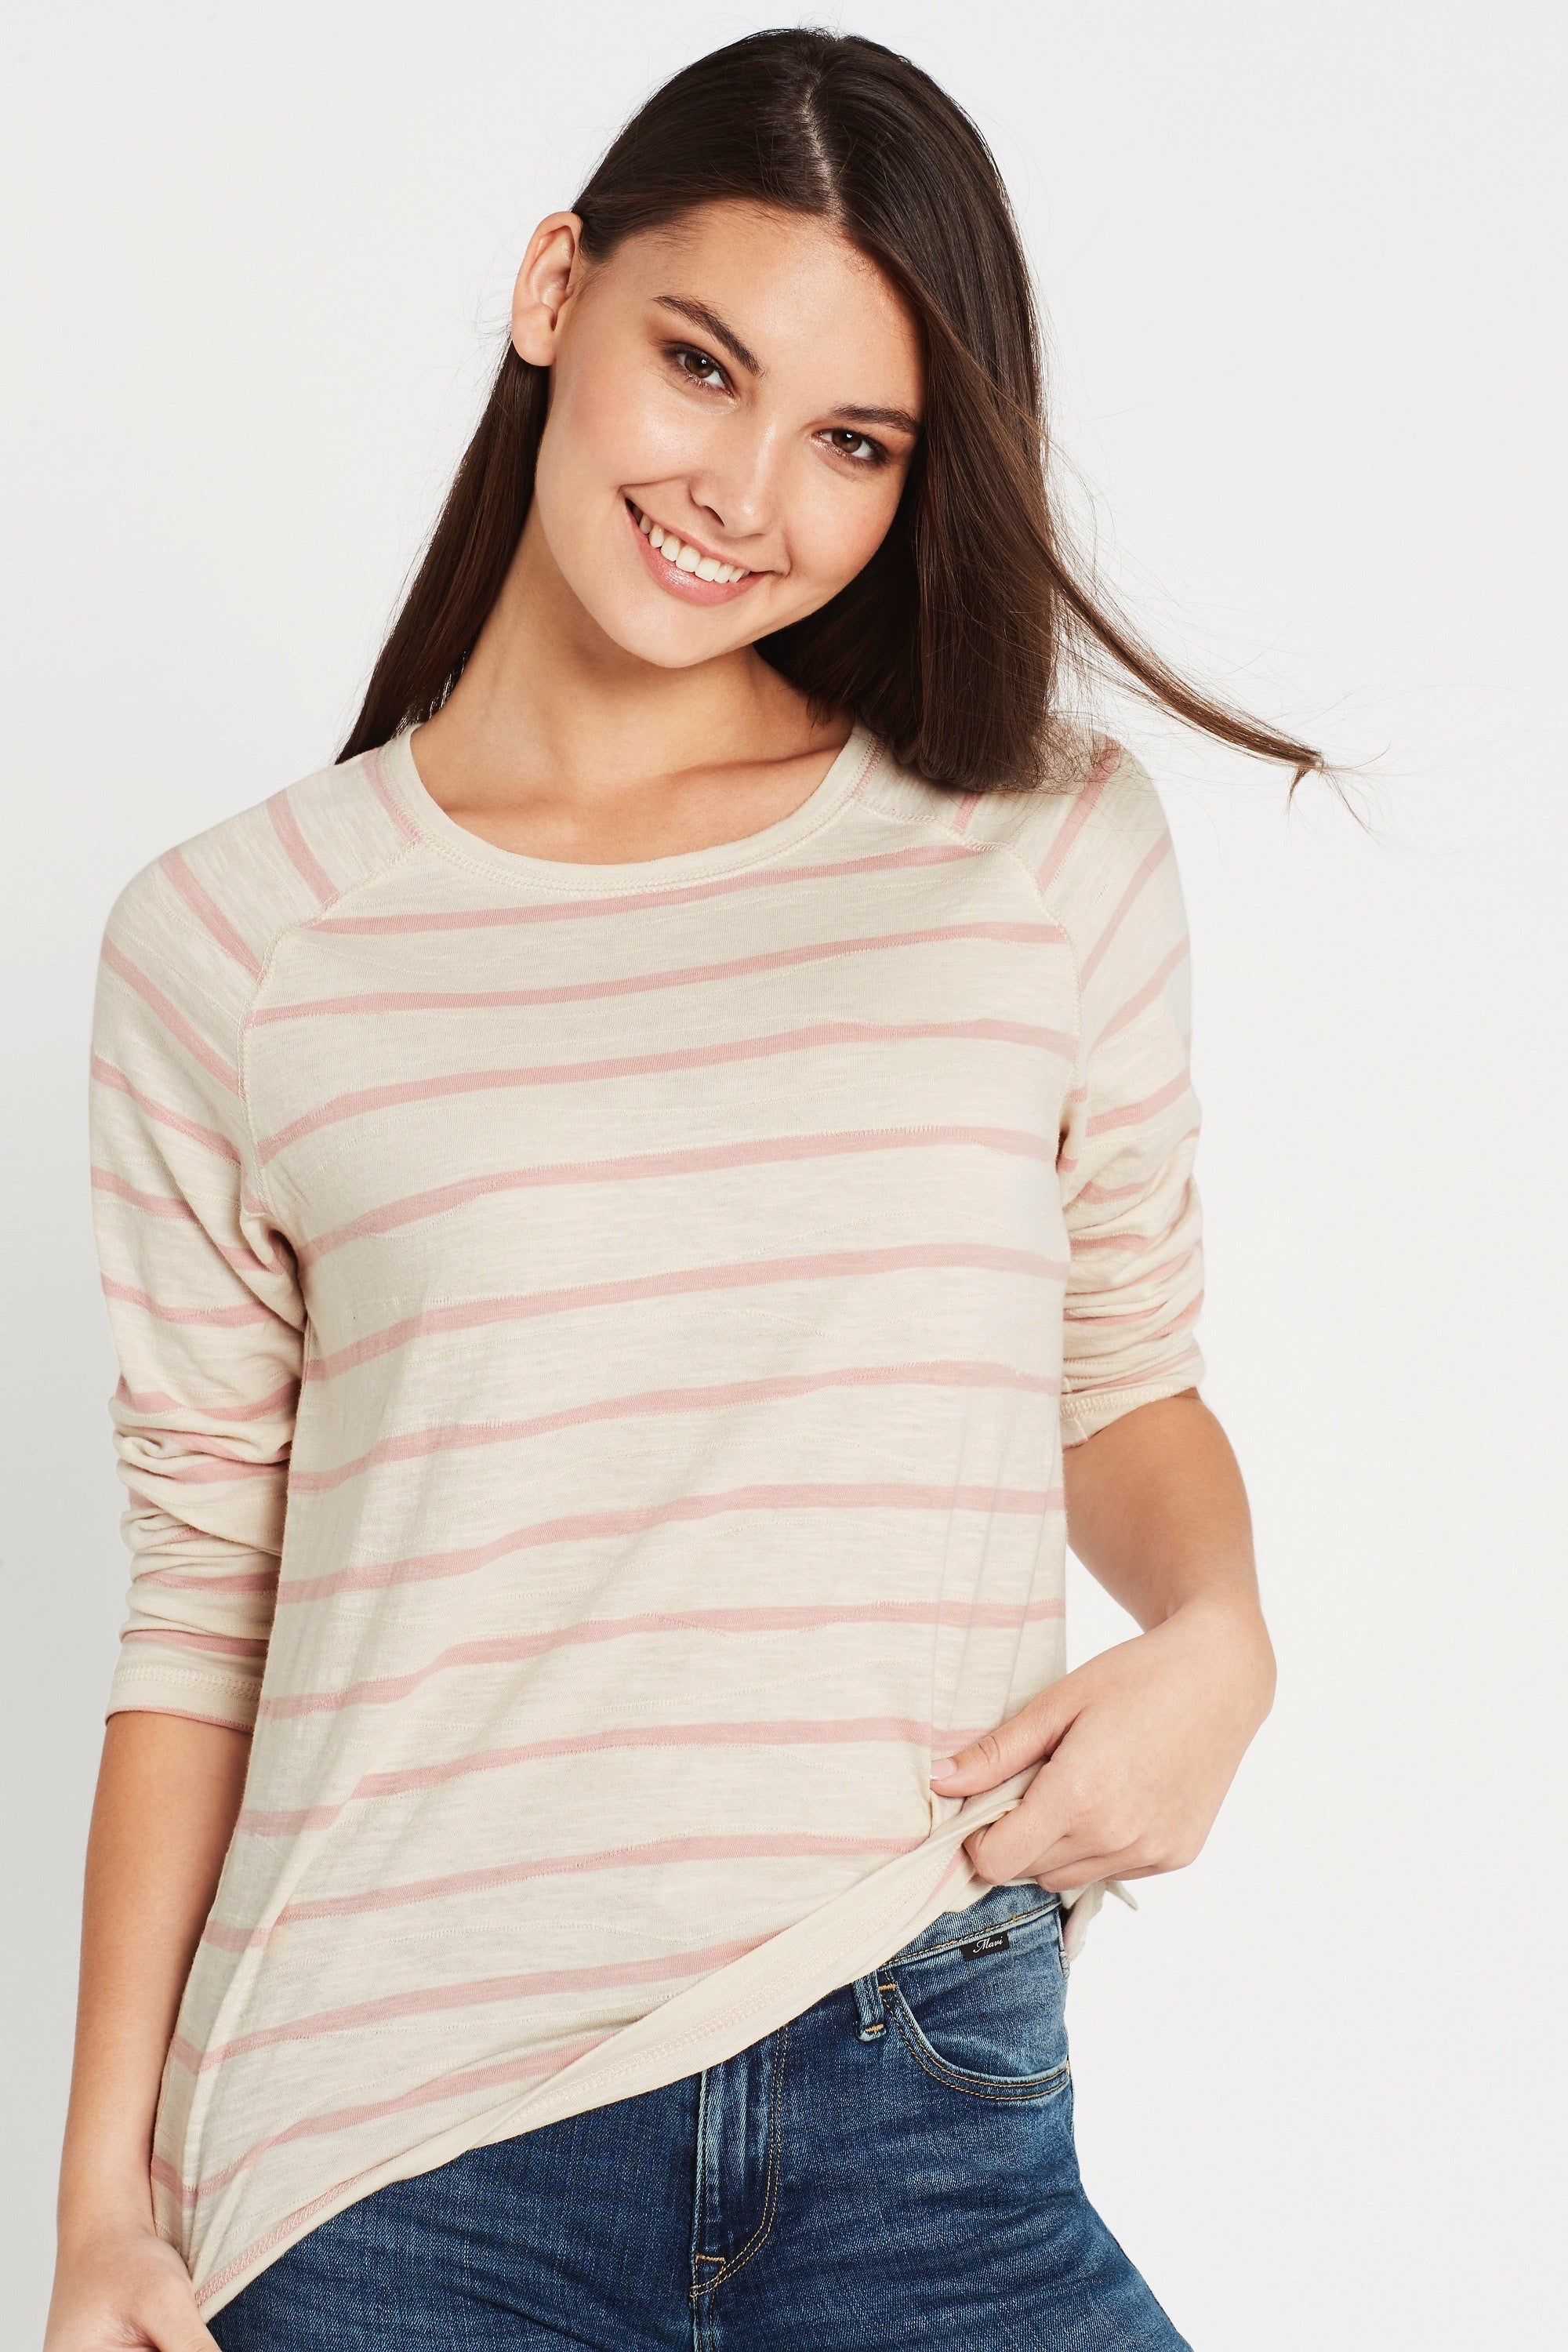 Sonya Long Sleeve T-Shirt Turtle Dove Rose Stripe